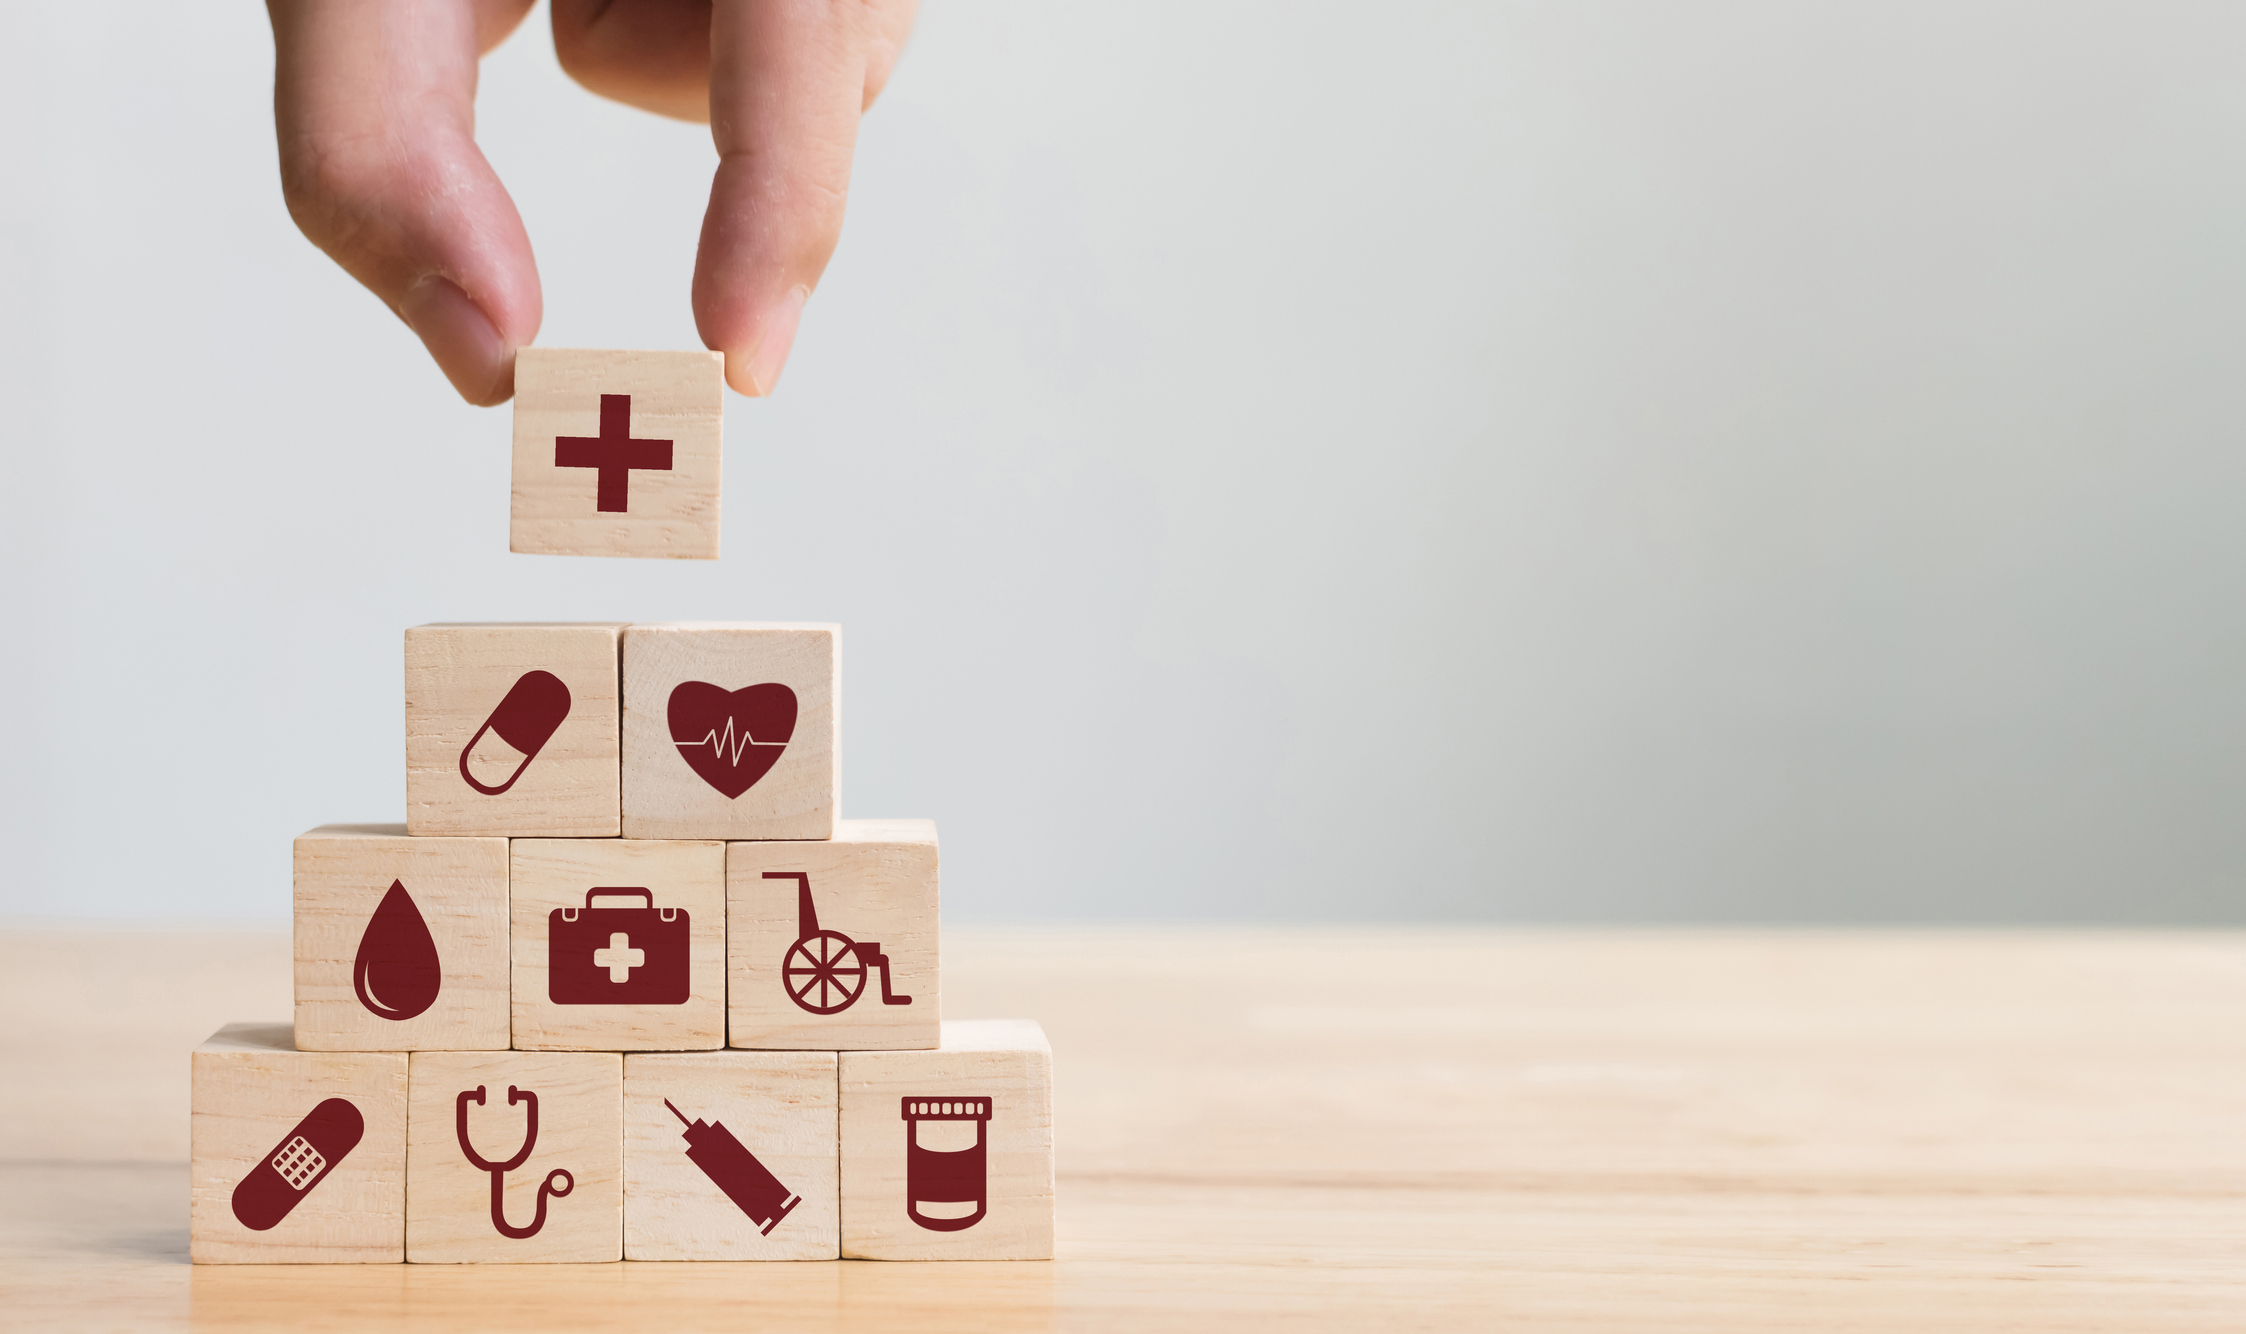 PLANNING FOR HEALTHCARE EXPENSES IN RETIREMENT